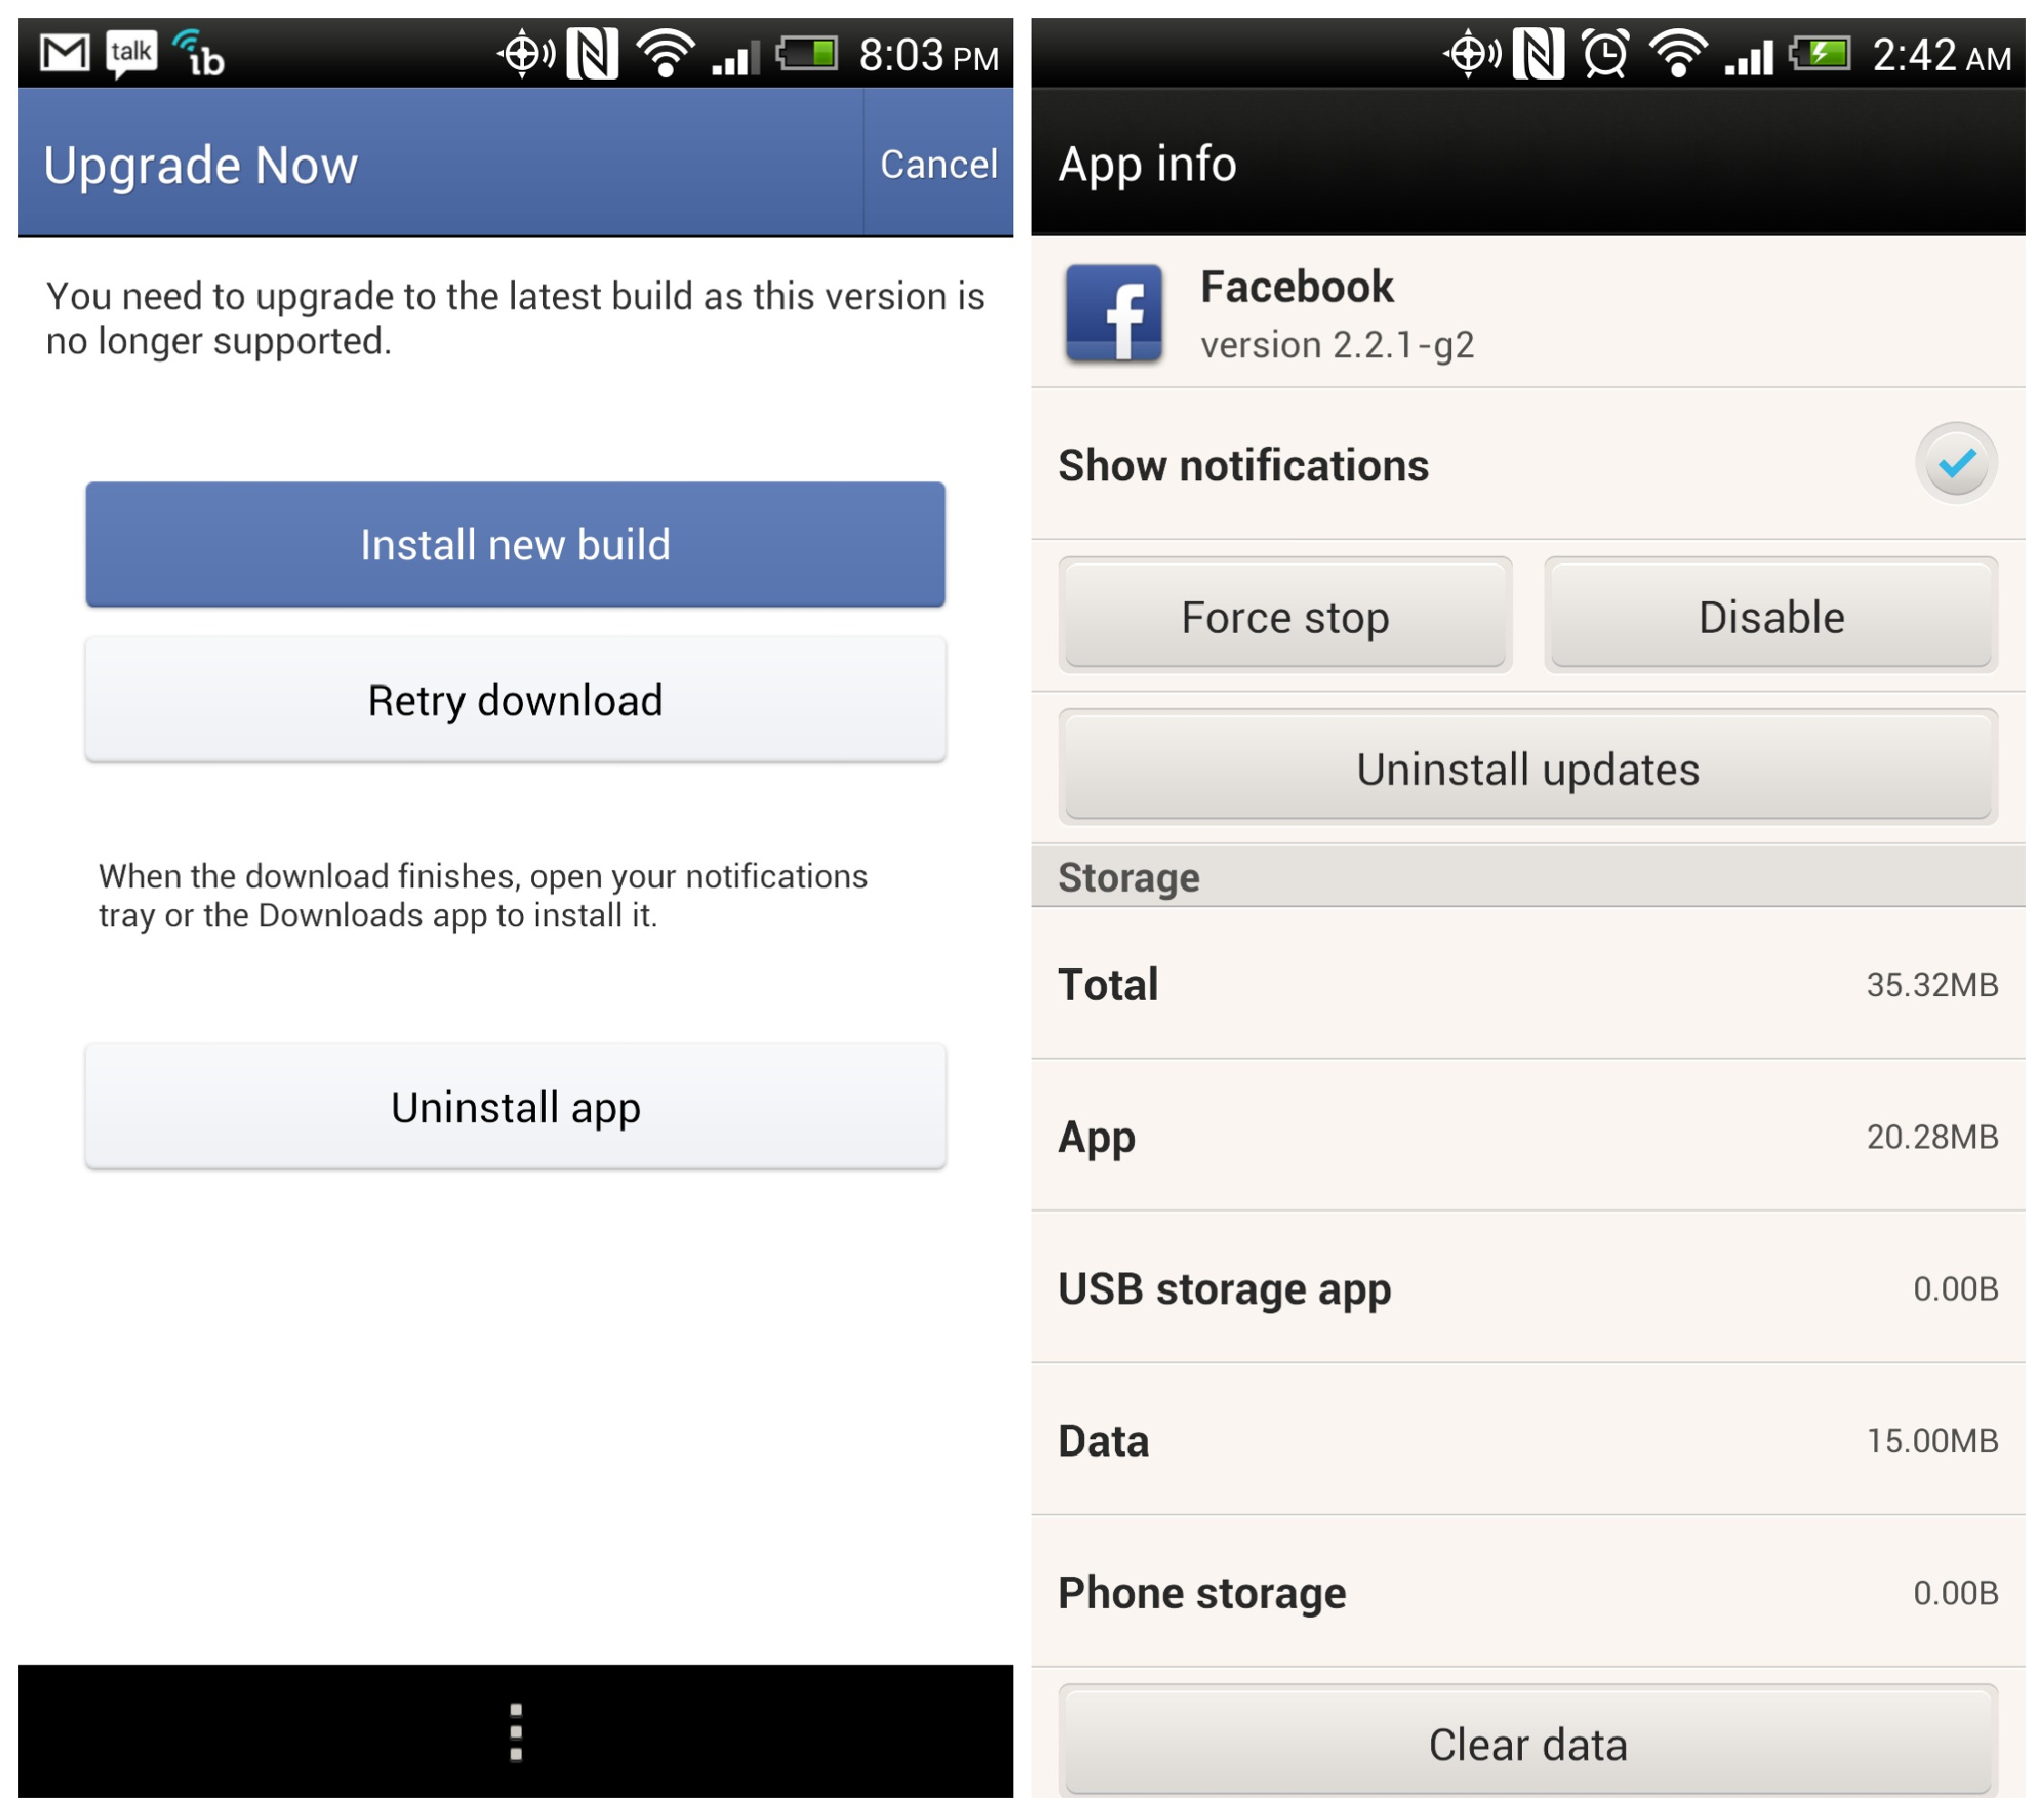 Latest News Updates: Facebook Skips Play Store In Latest Version, App Now